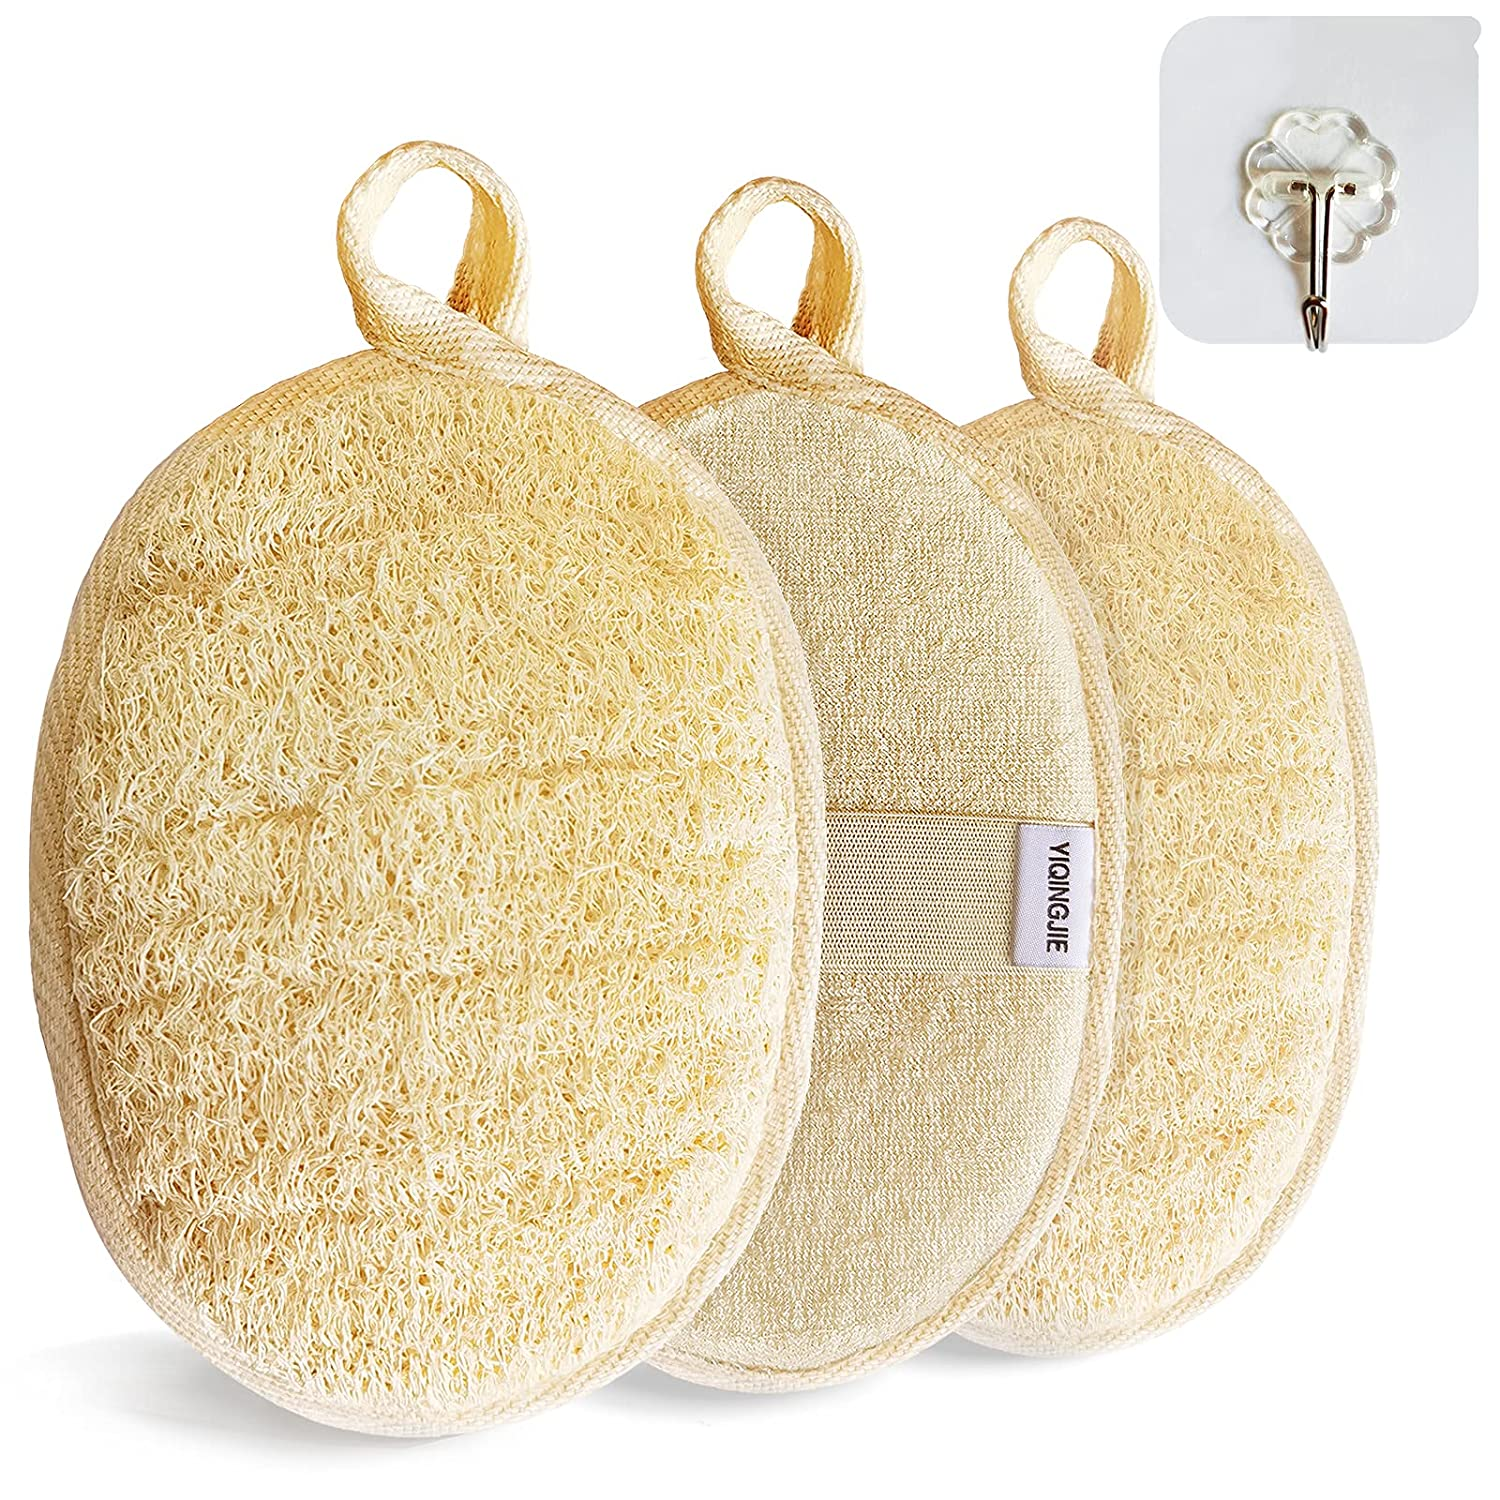 Beauty products Natural Loofah Sponge Ranking TOP5 Exfoliating Body 3 wi Pack Scrubber Made